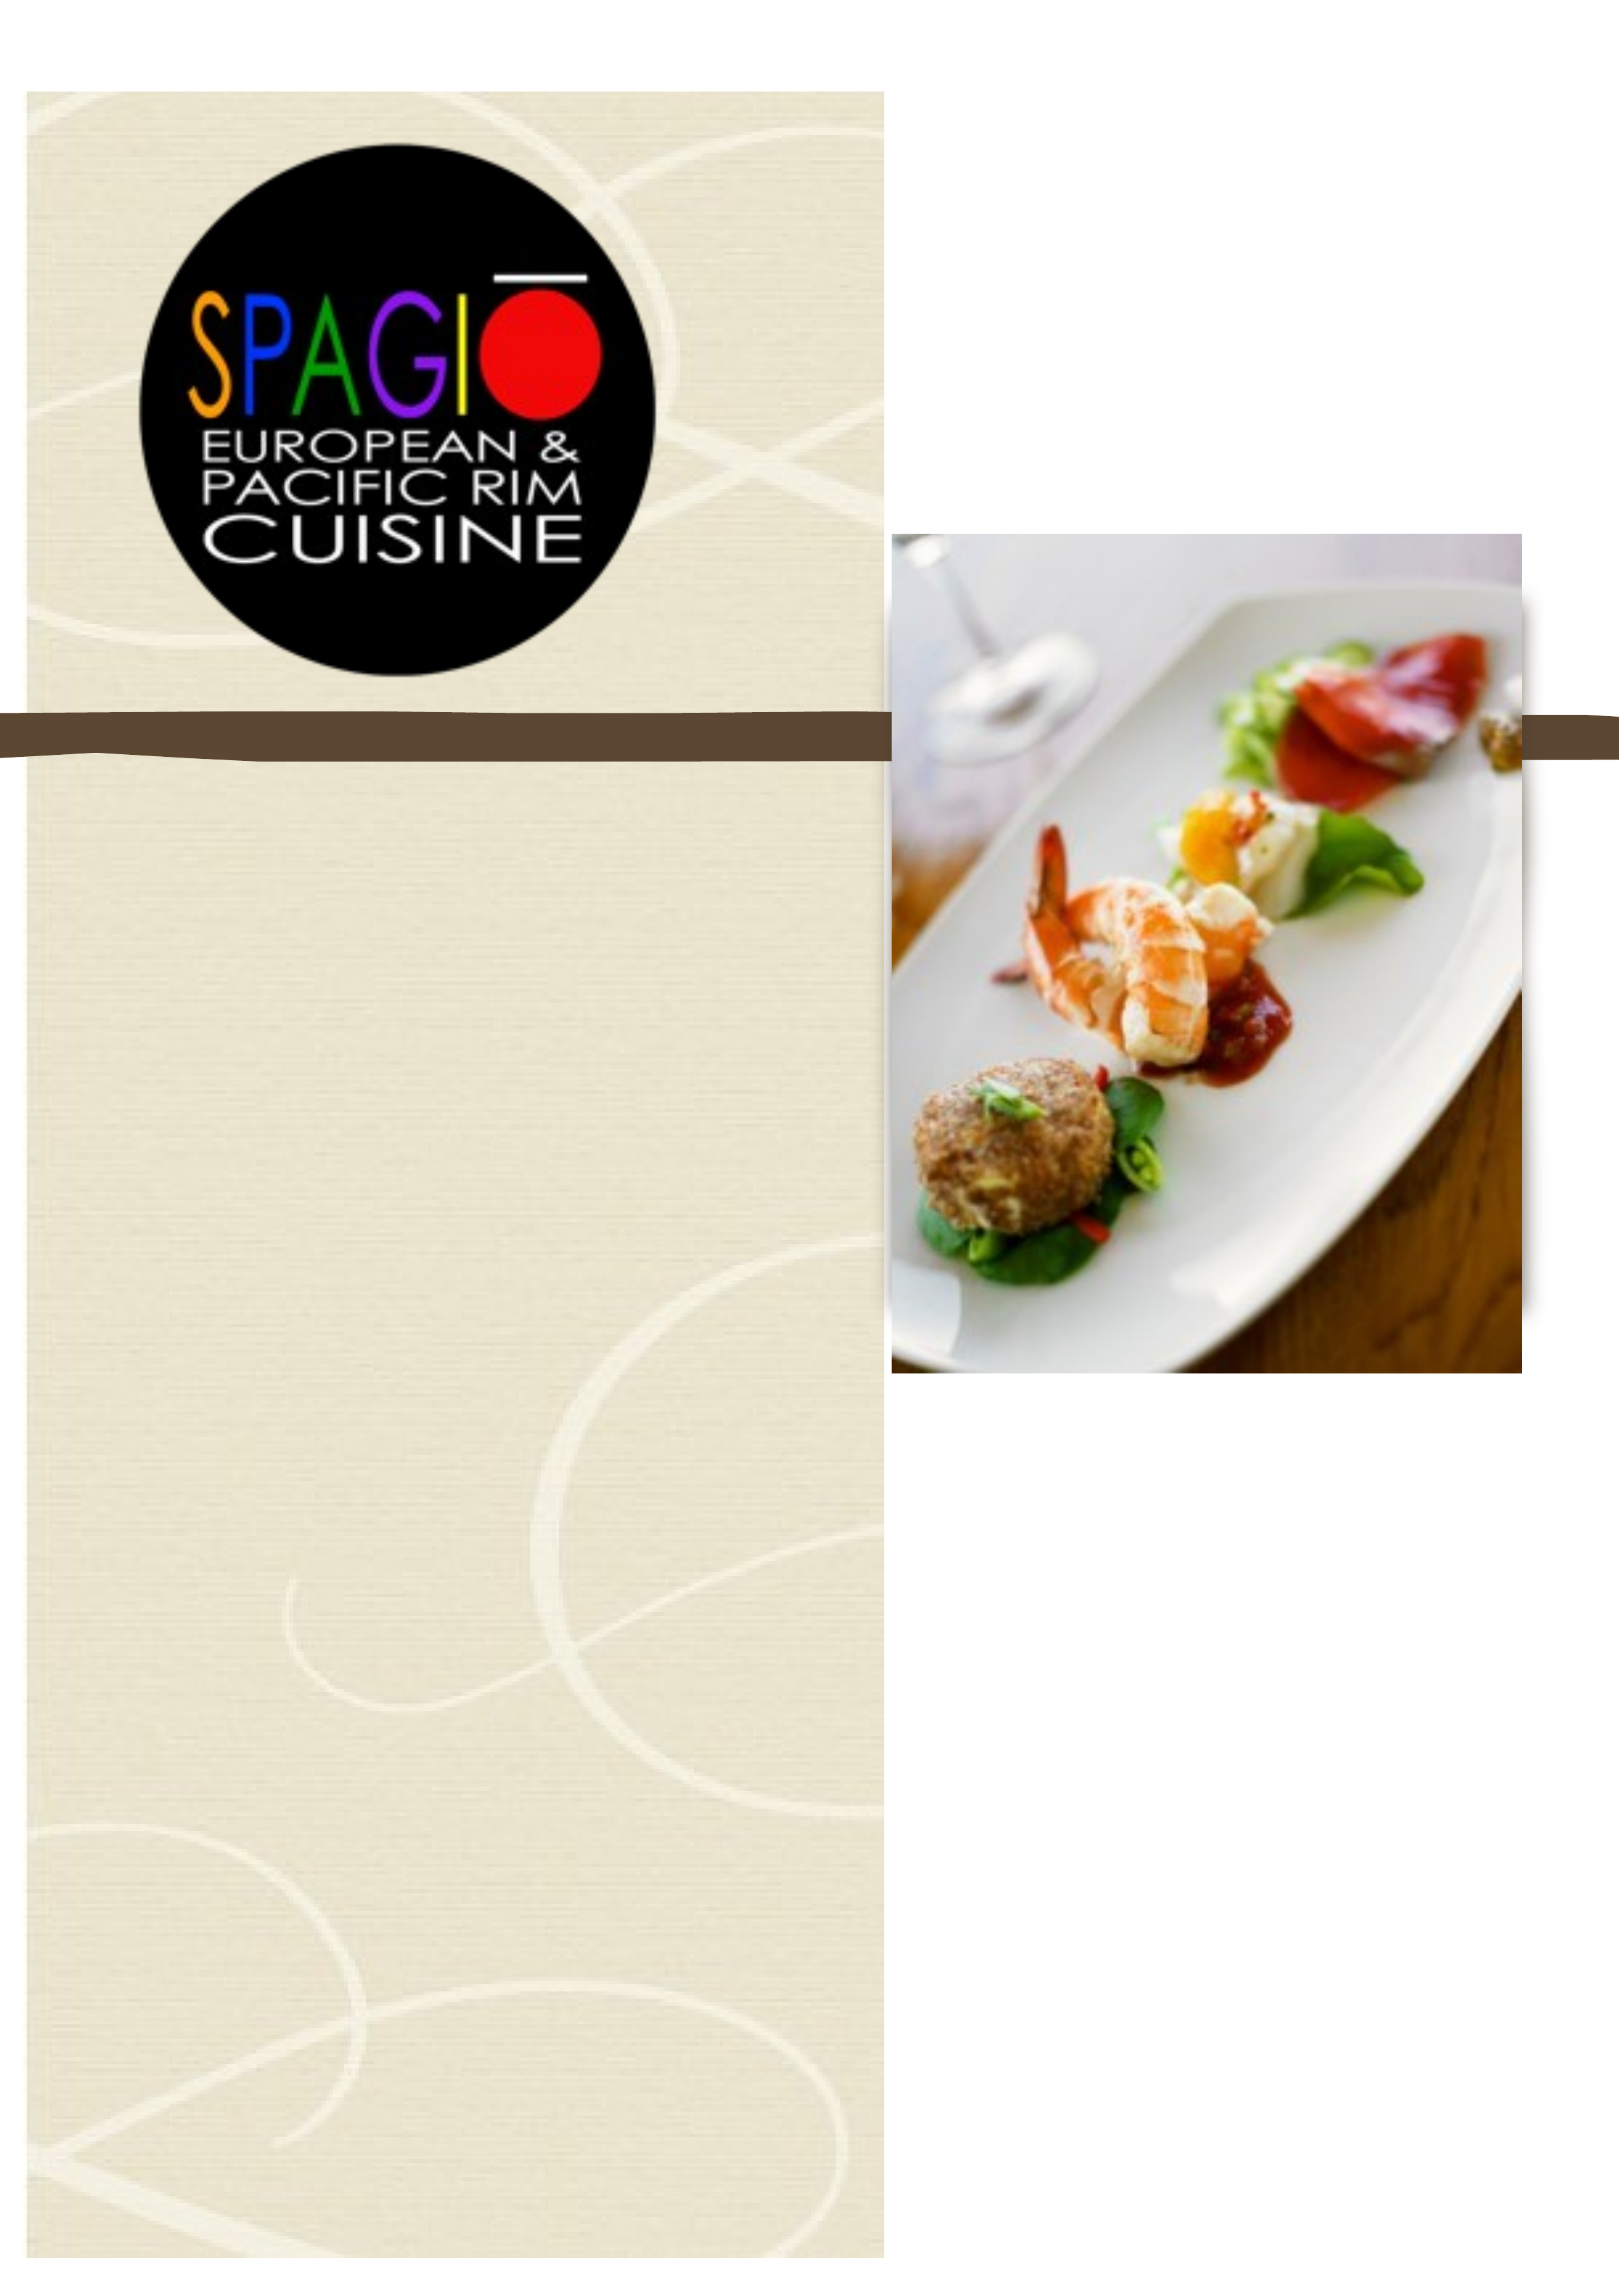 Catering Brochure Templates For Sping Summer Menu Free Download - Catering brochure templates